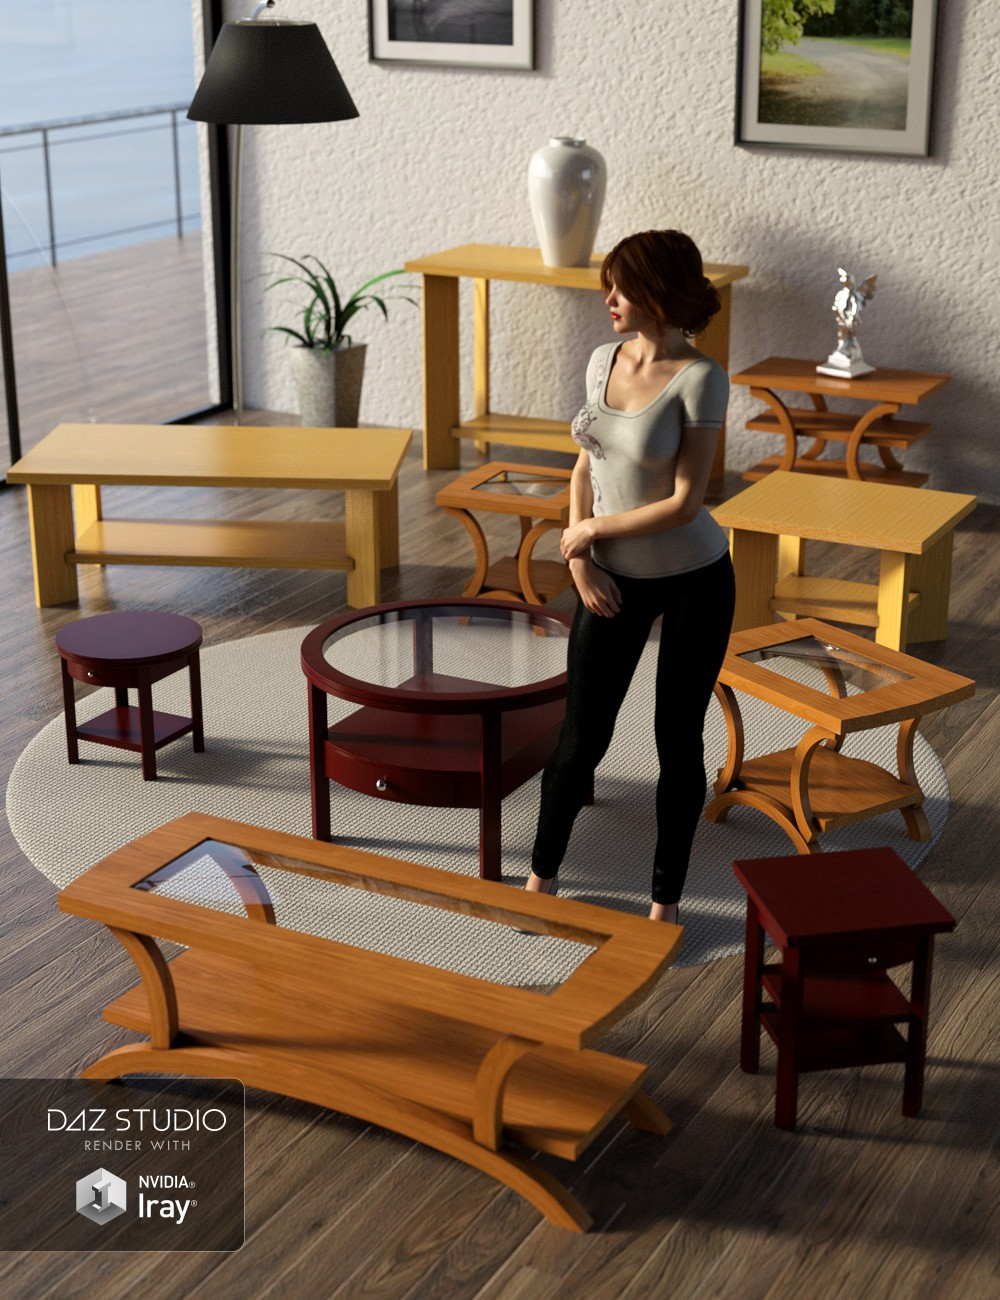 download daz studio 3 for free daz 3d the living room